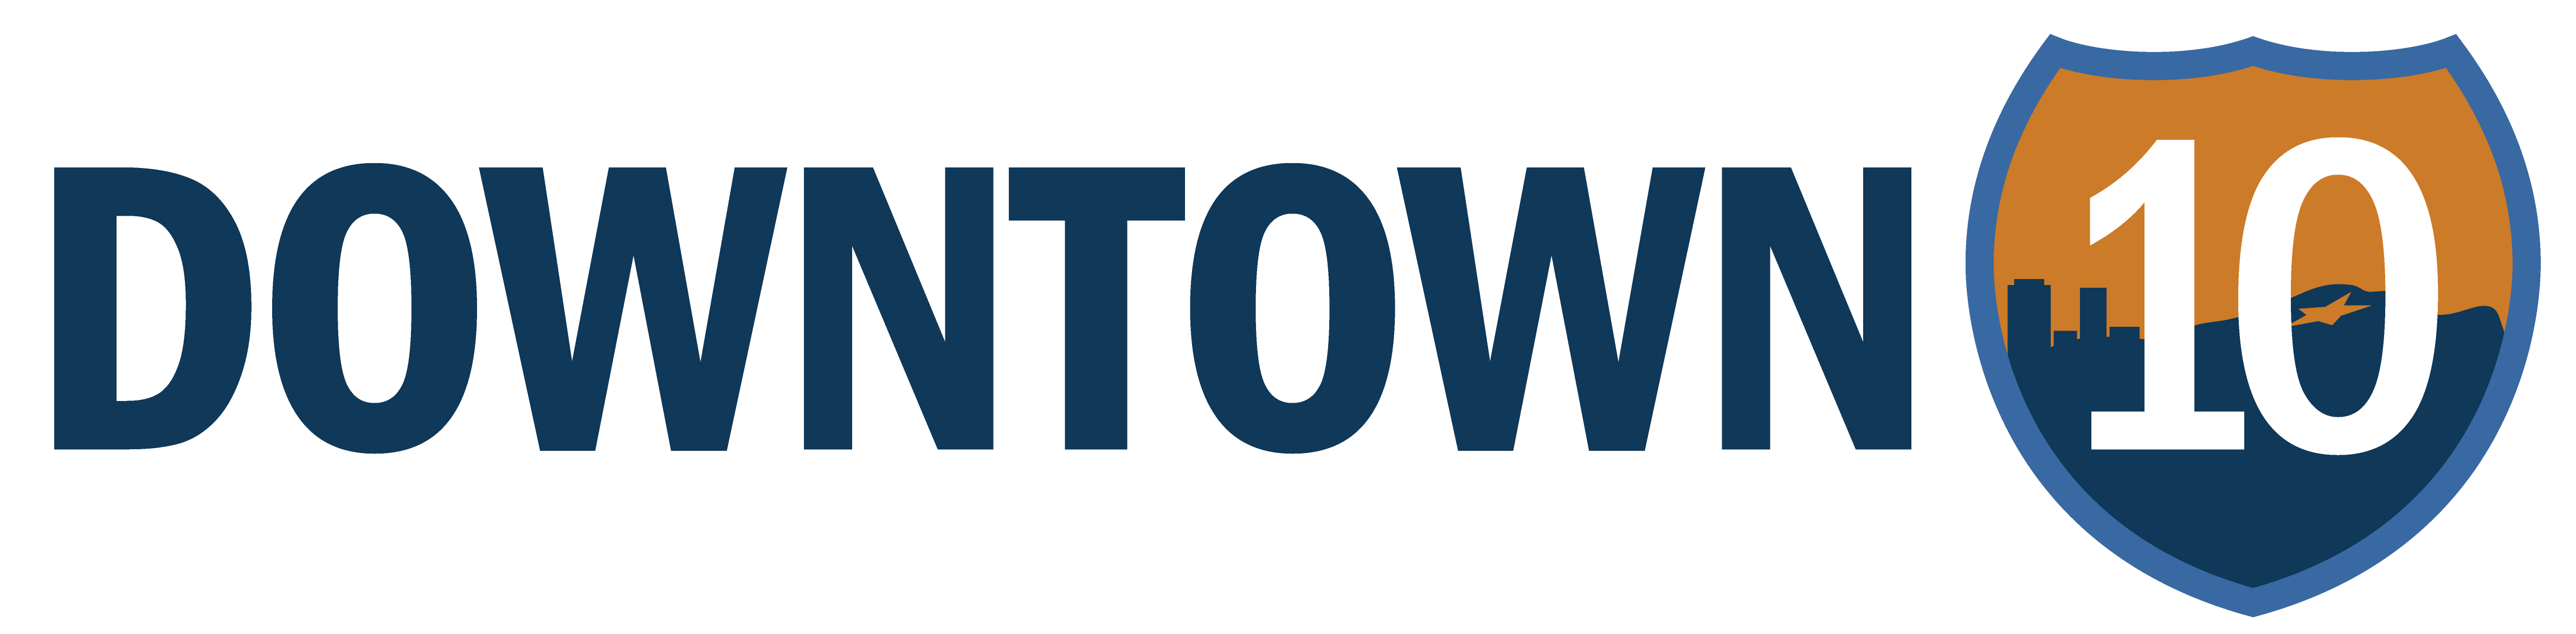 Downtown 10 logo